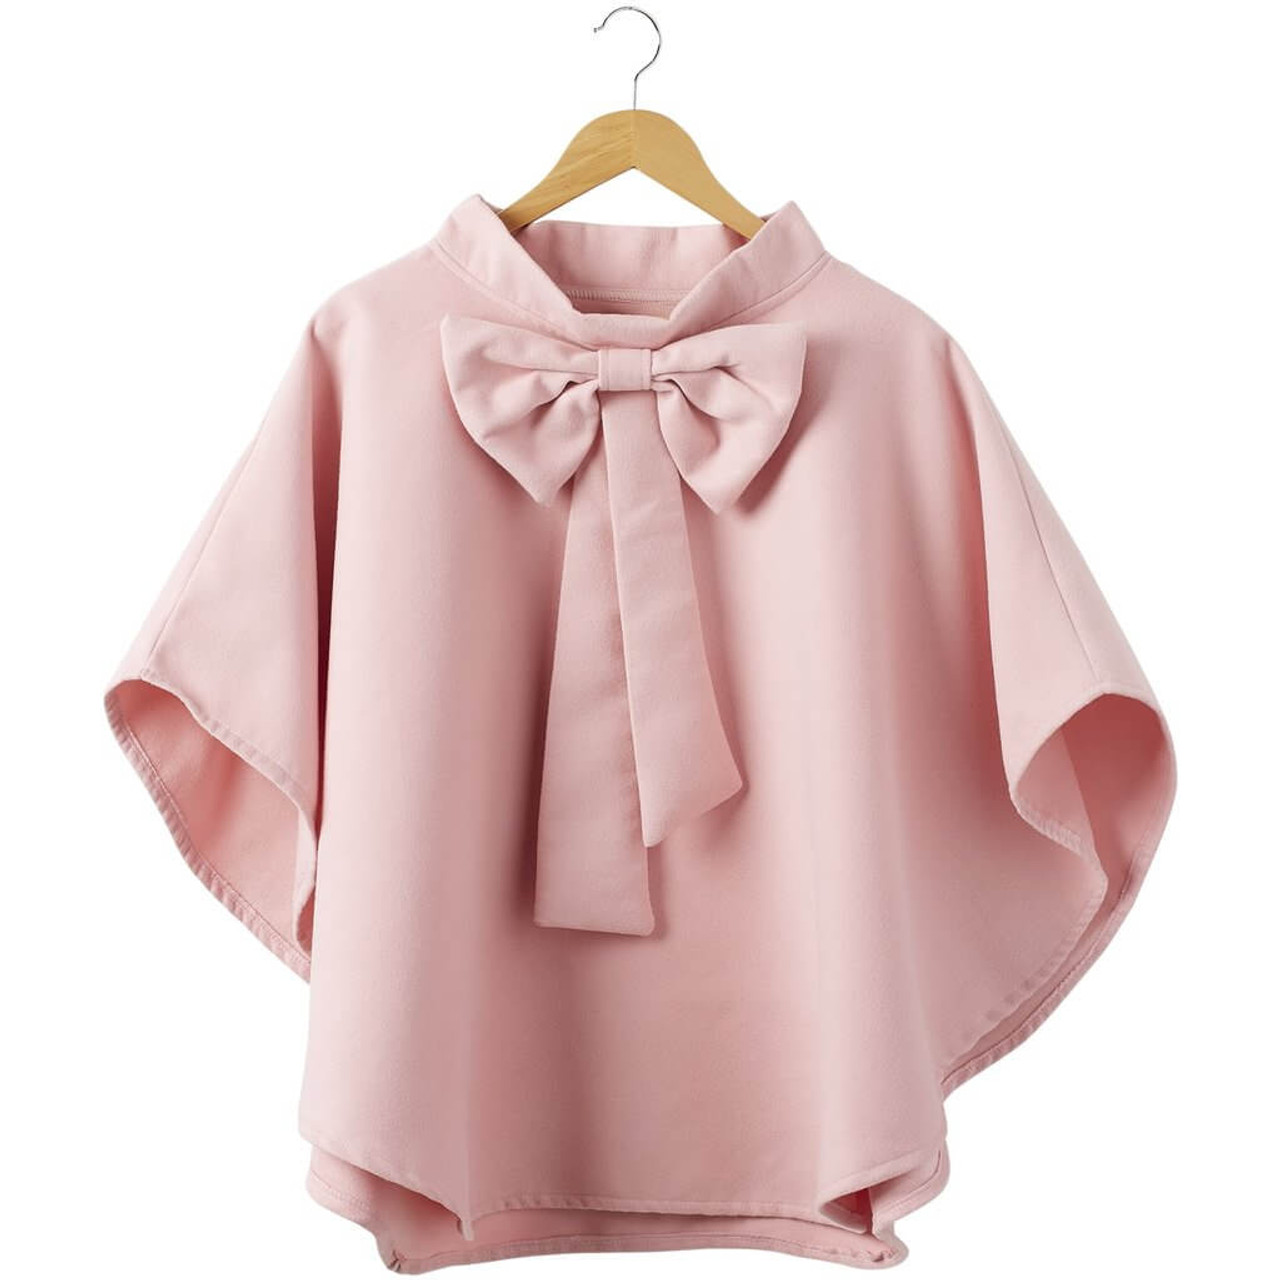 """Pink Elsa Bow Cape Rounded edges and an oversized bow make this cape an absolute beauty that will elevate any outfit in an instant. Approx 29.5"""" long; one size fits most."""